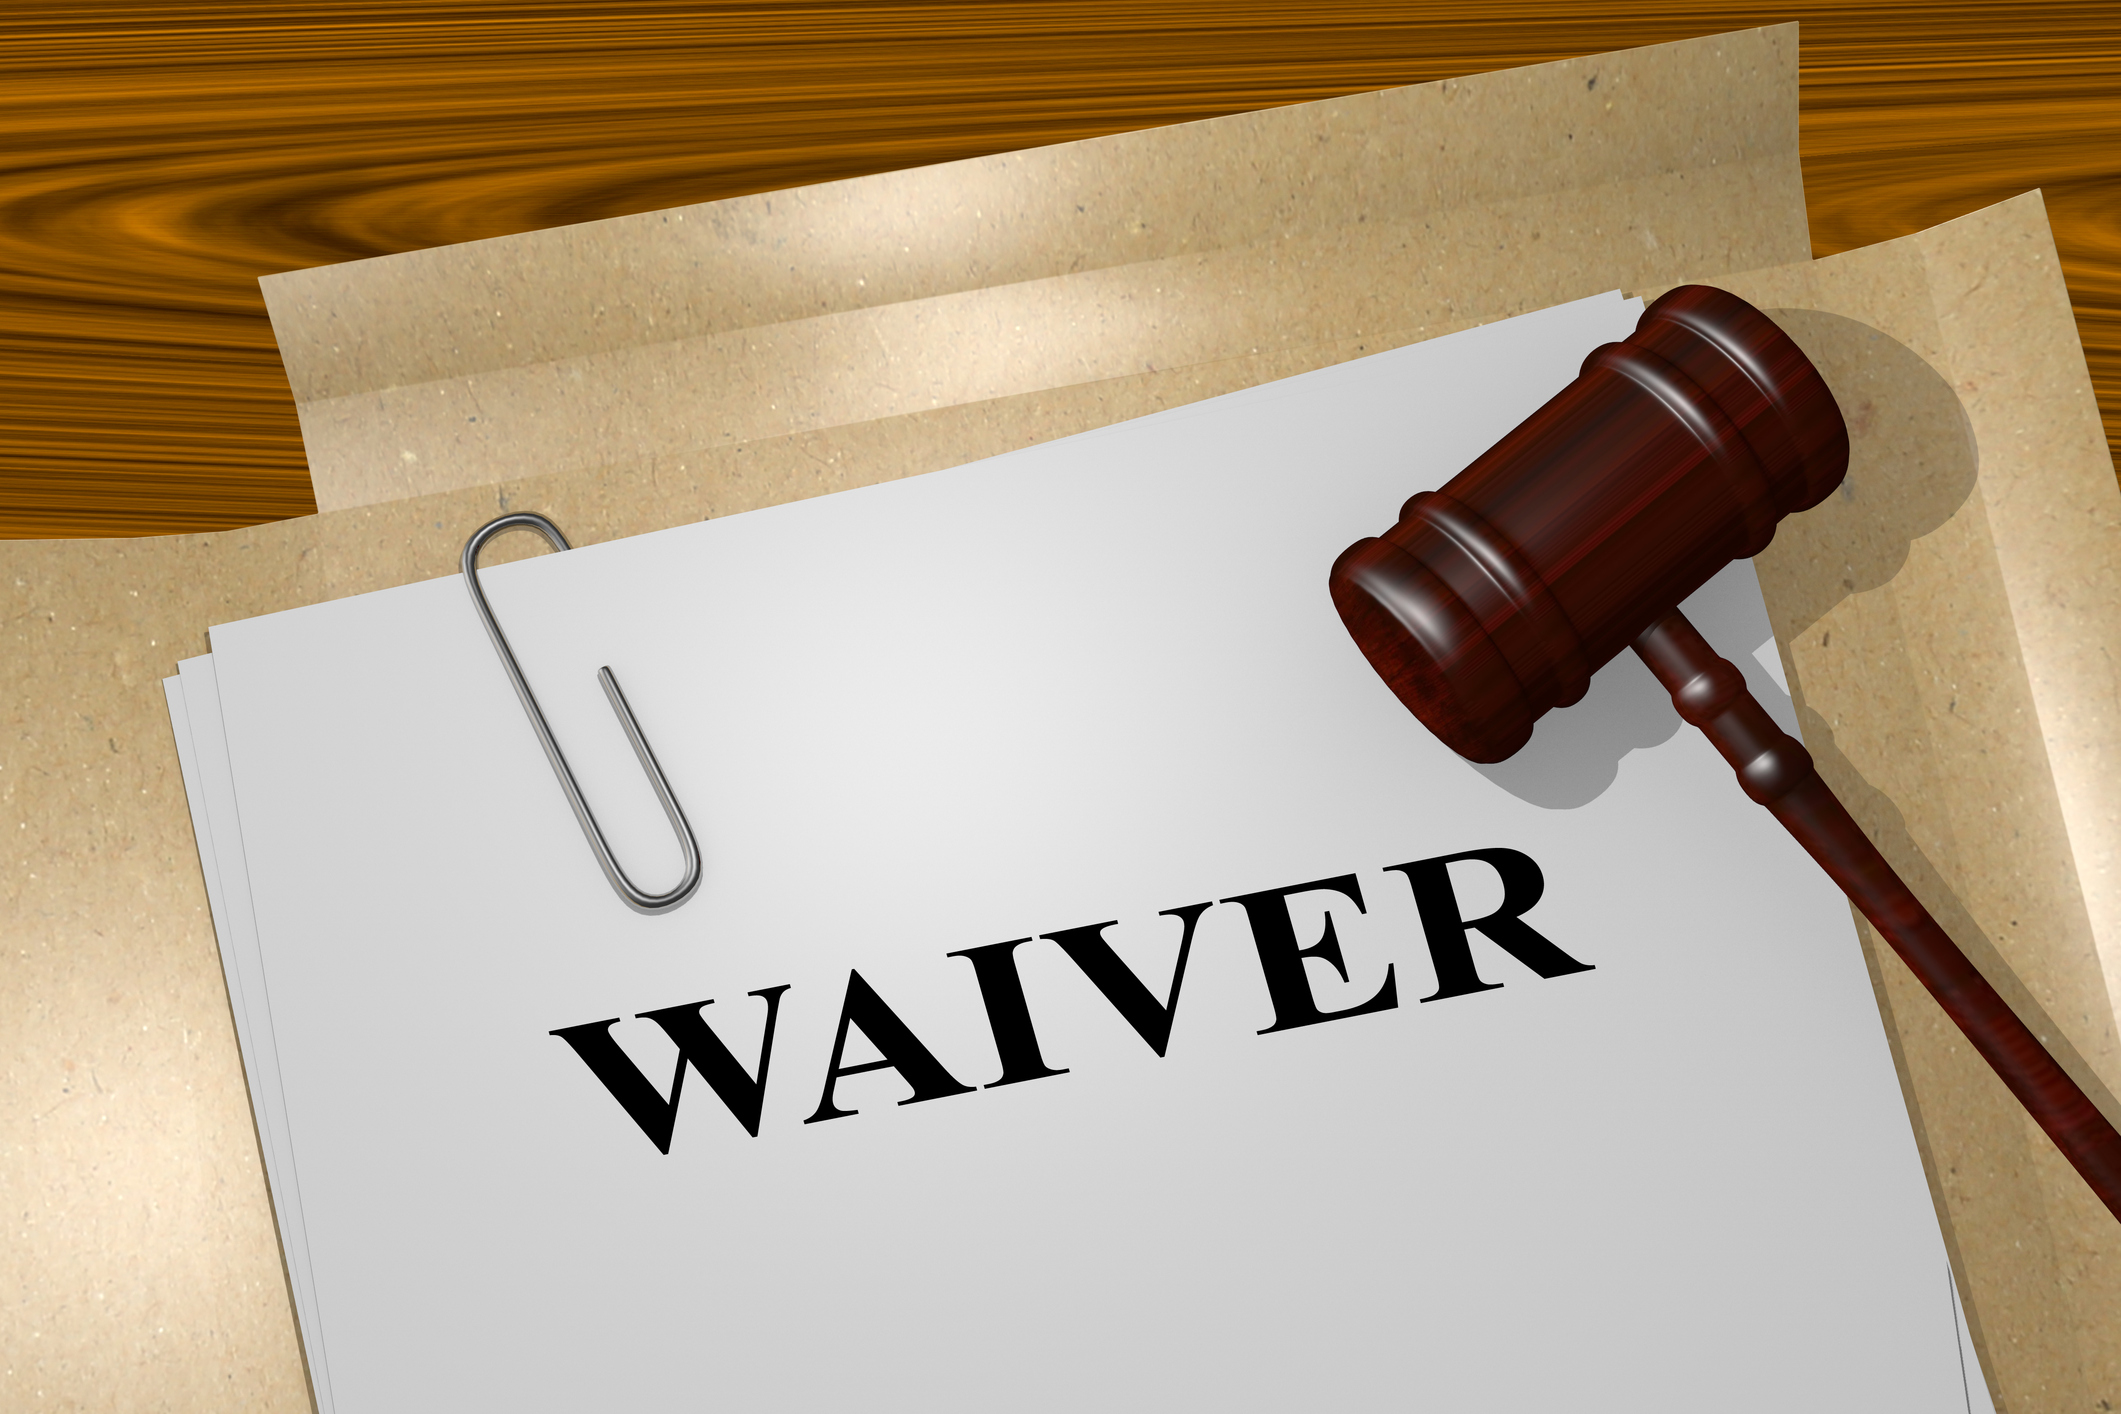 A Waiver Of Notice Is A Requirement For Board Meetings Depending On The Precedent Of The Meeting